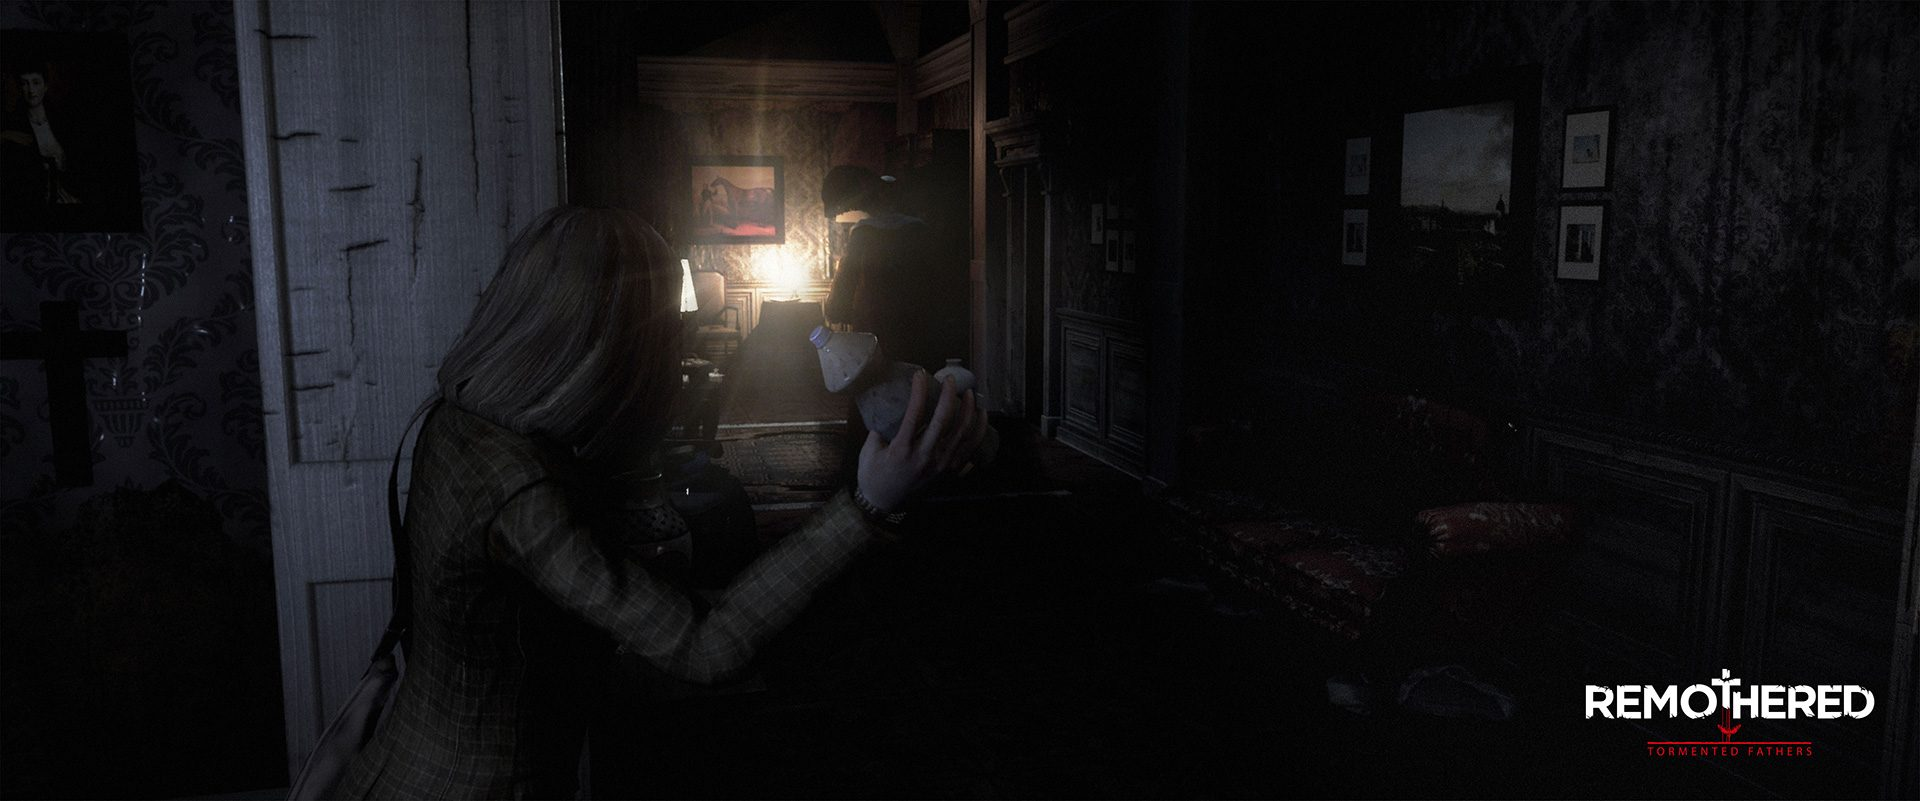 Remothered-Tormented-Fathers-11.jpg